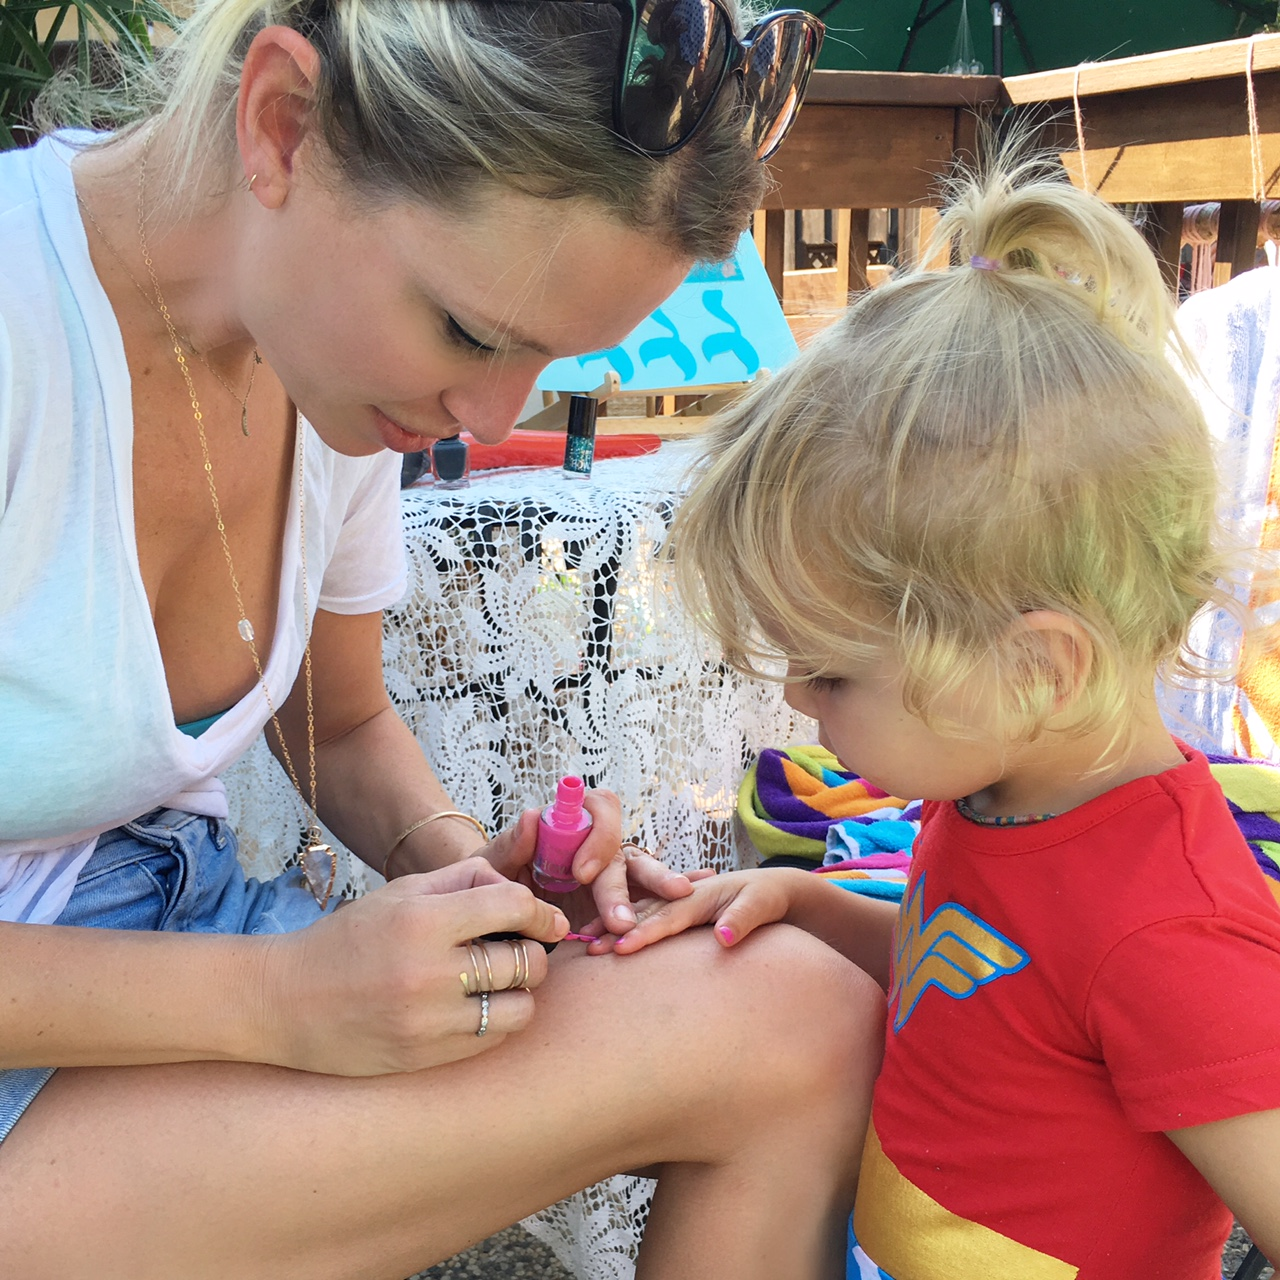 painting little girl's nails